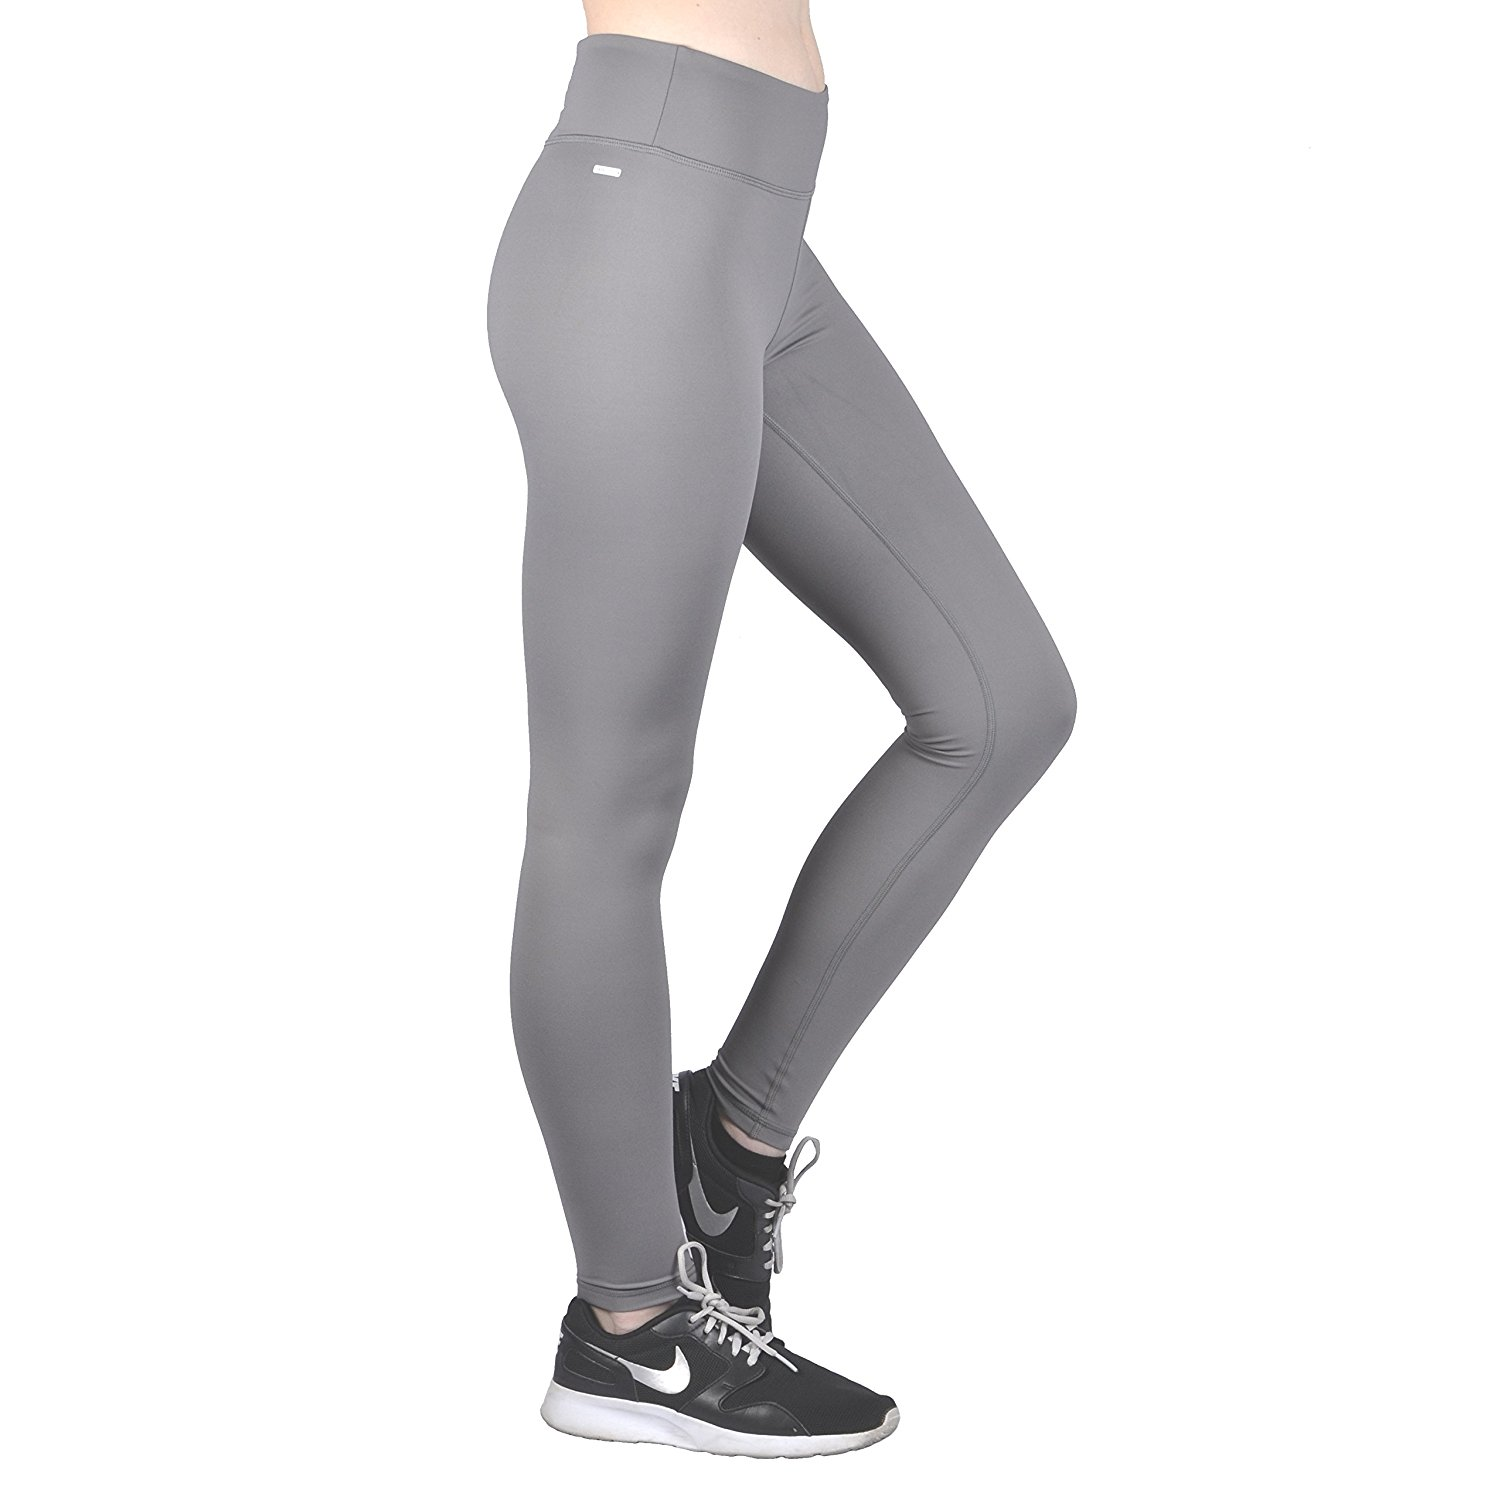 aef005cefc Get Quotations · Dynamic Athletica Compression Workout Leggings - Workout  Clothes and Yoga Pants